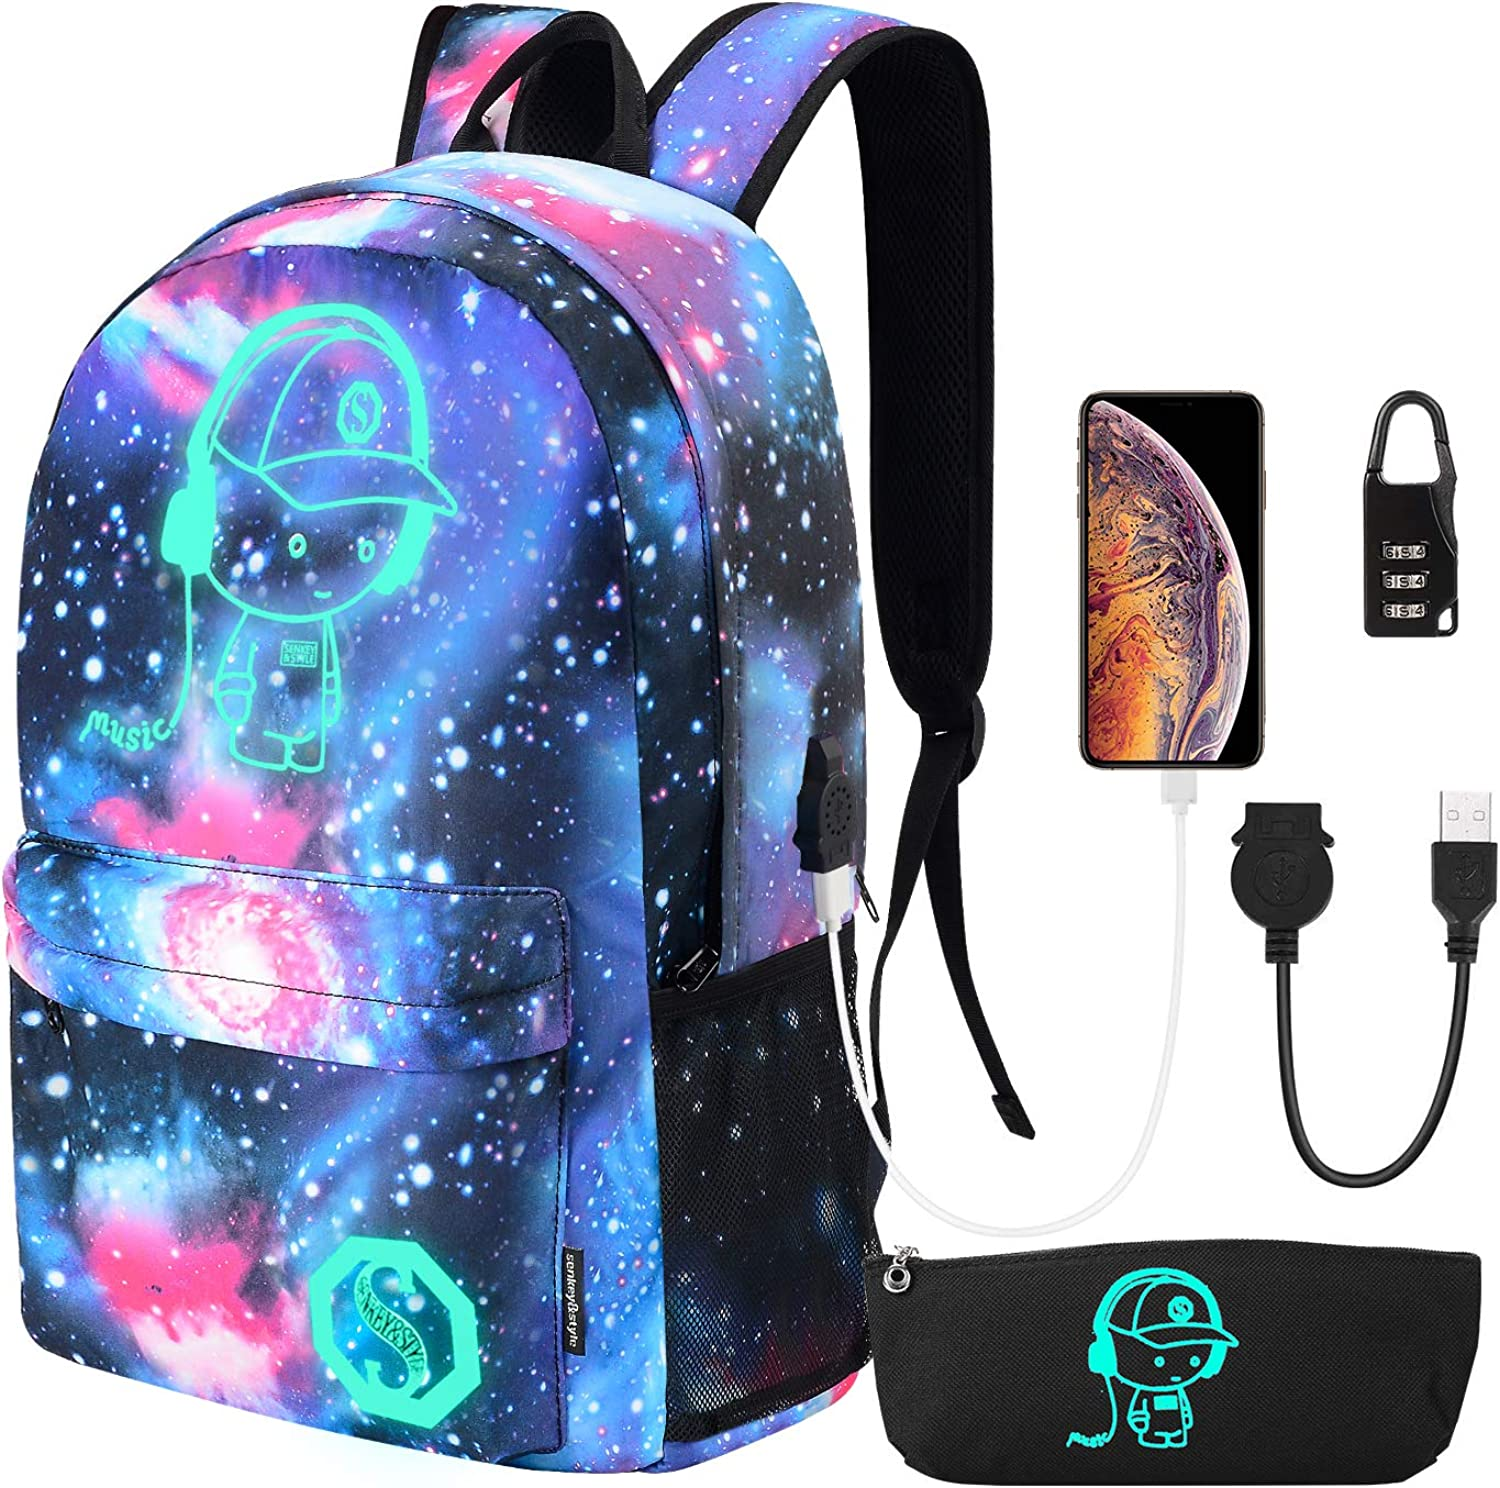 Galaxy Backpack for School, Anime Luminous Backpack with USB Charging Port and Lock & Pencil Case, Lightweight Travel Anti-Theft Laptop Backpack for Boys/Girls, Sky Blue, Galaxy Backpack